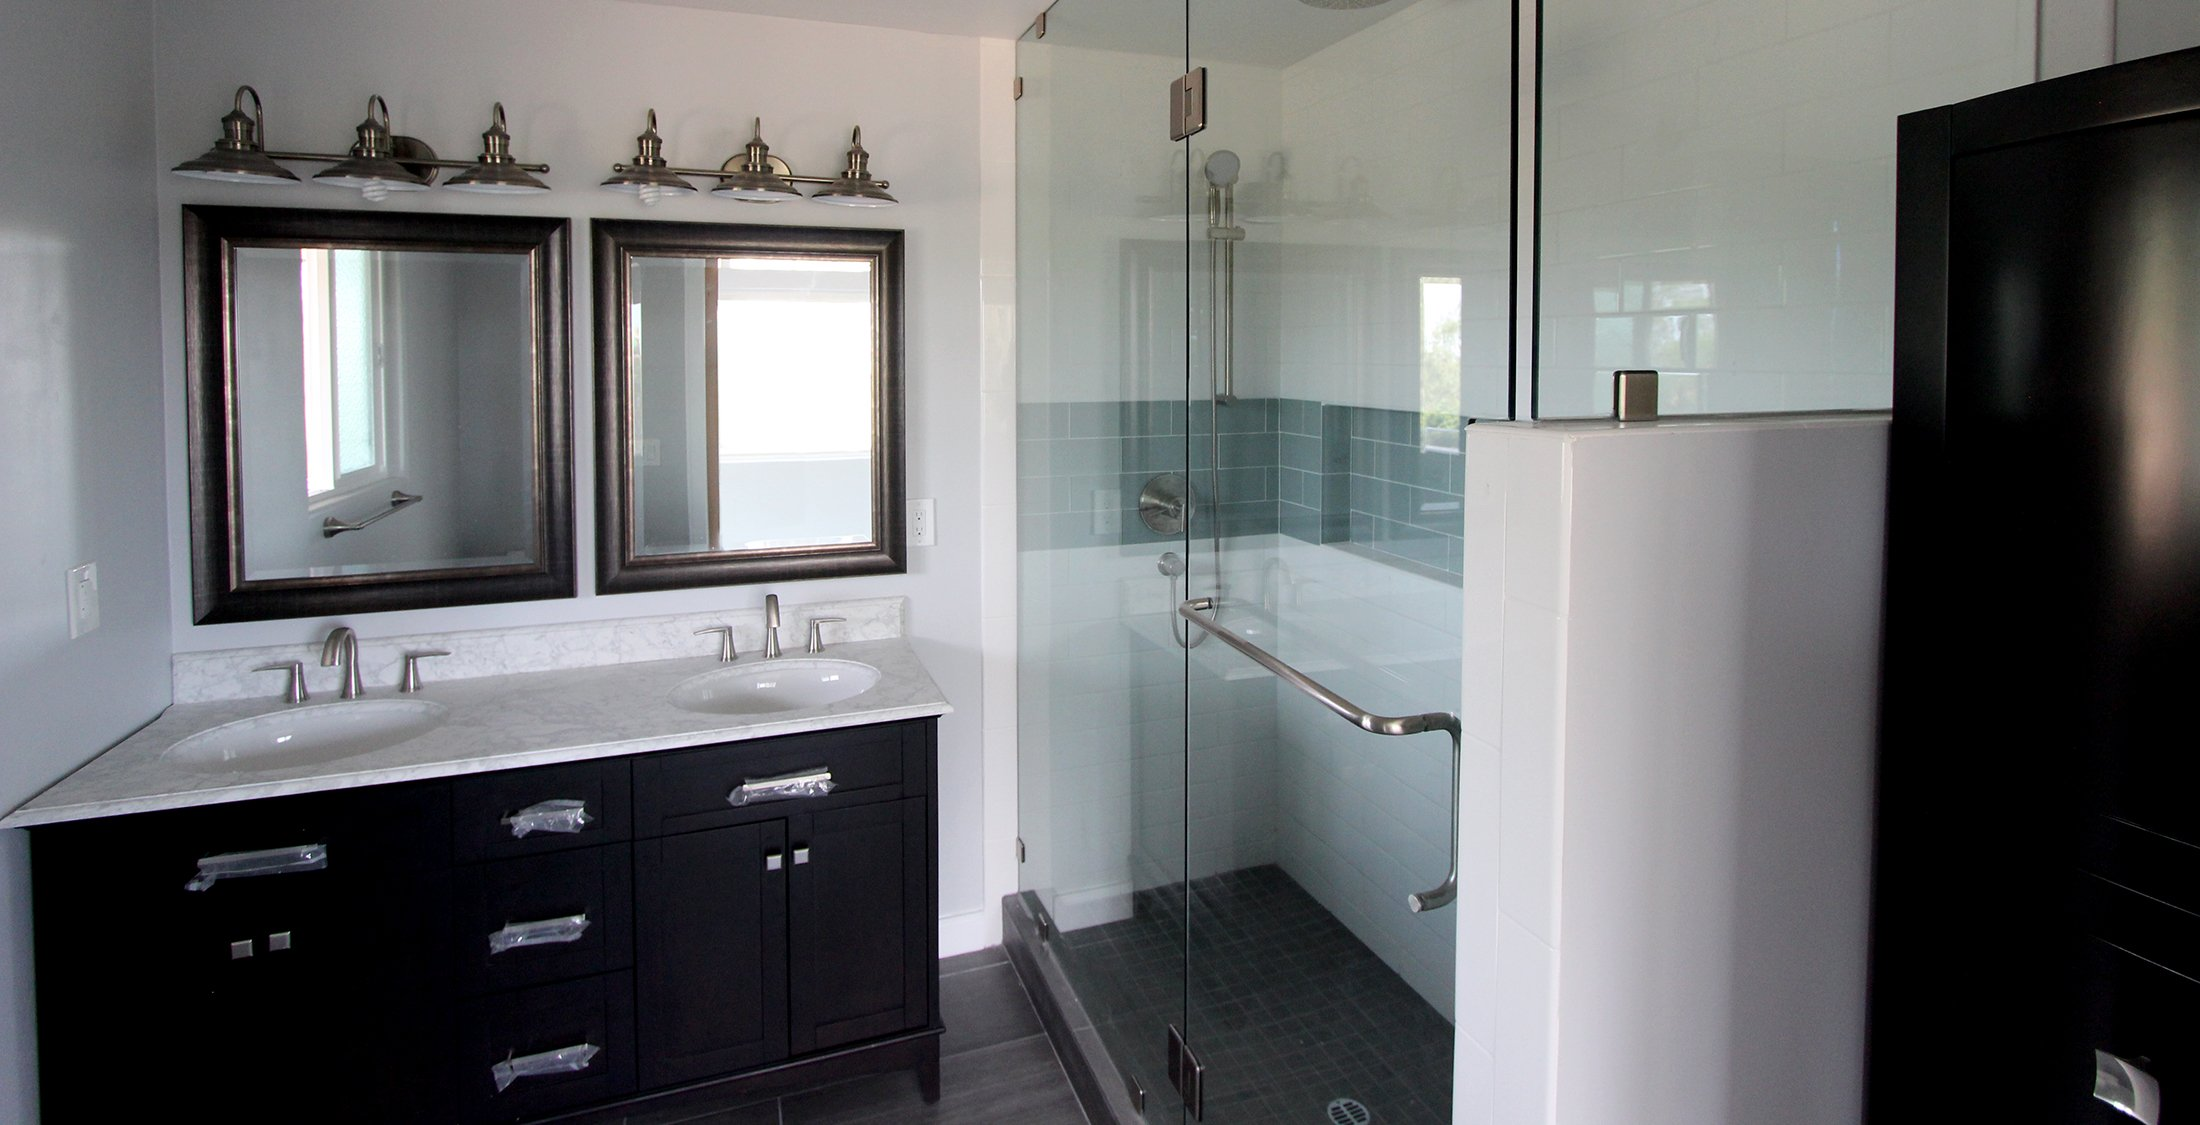 Home Improvement Projects That Increase The Value Of San Diego Homes - Bathroom vanities in san diego ca